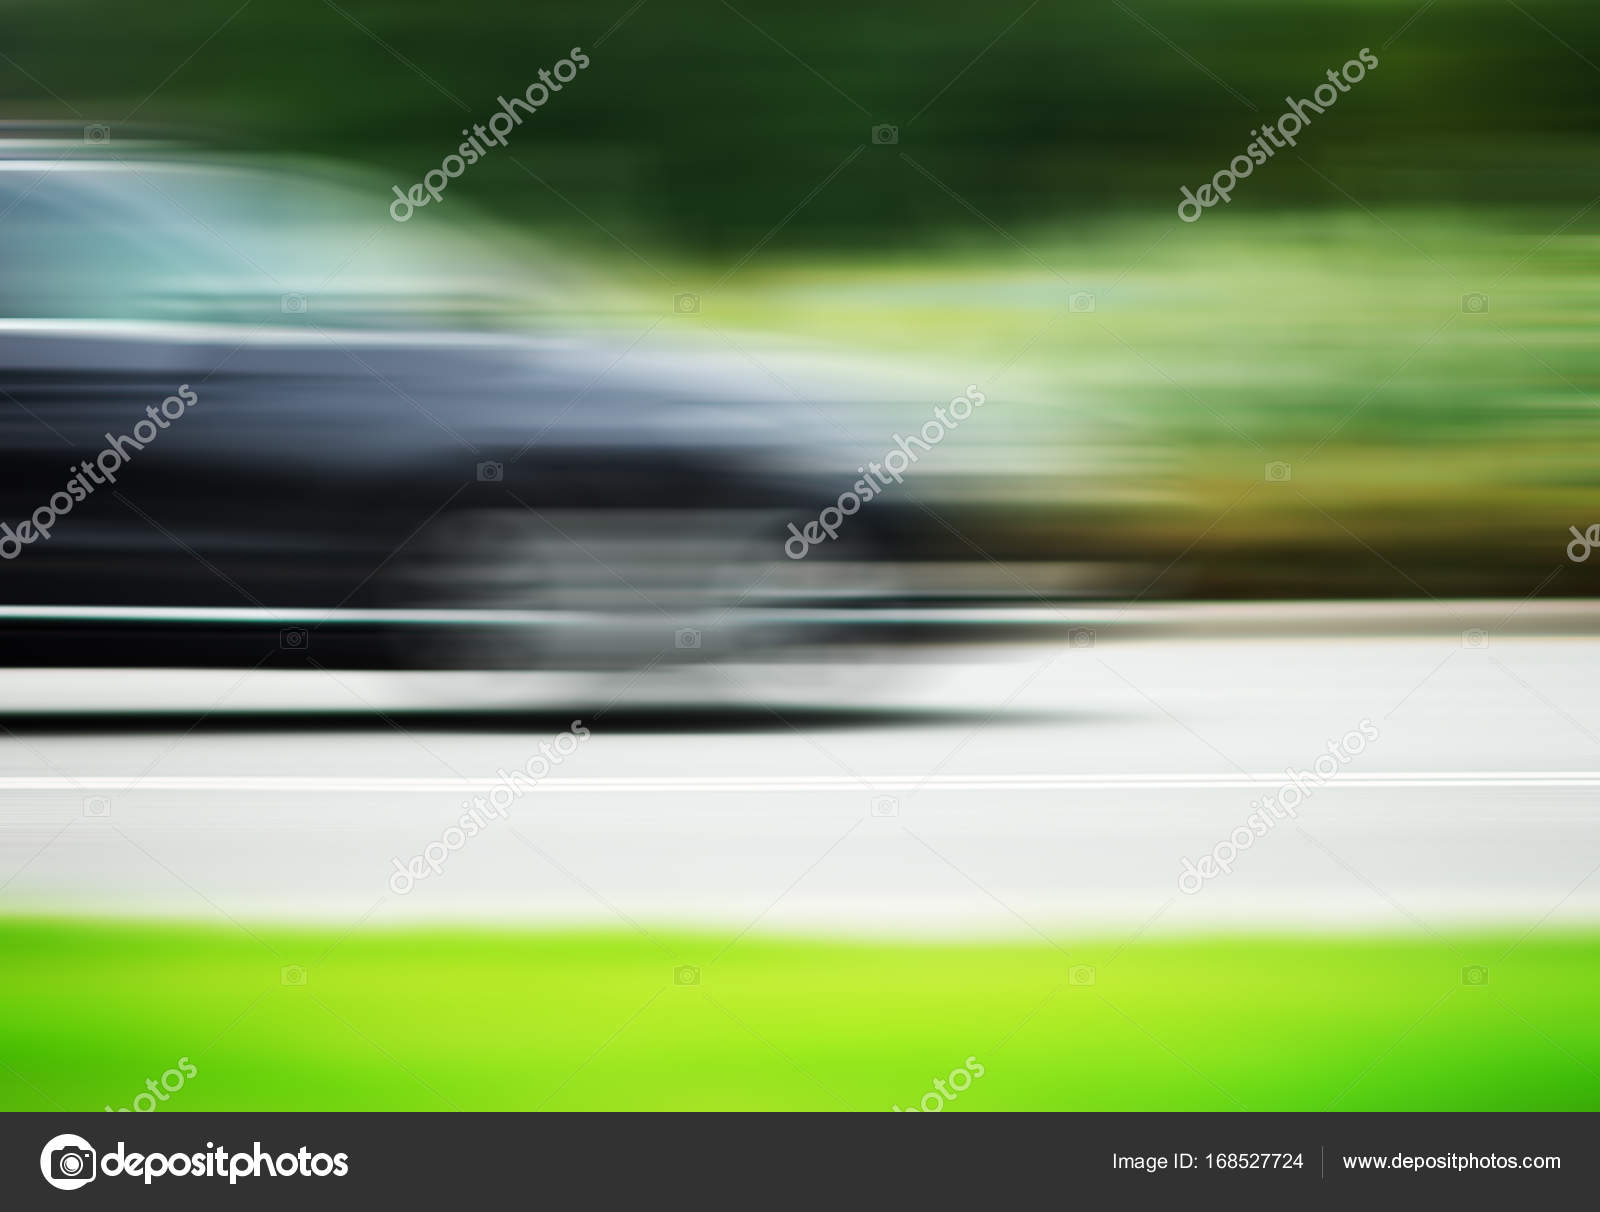 Horizontal Car On Road Motion Blur Background Stock Photo